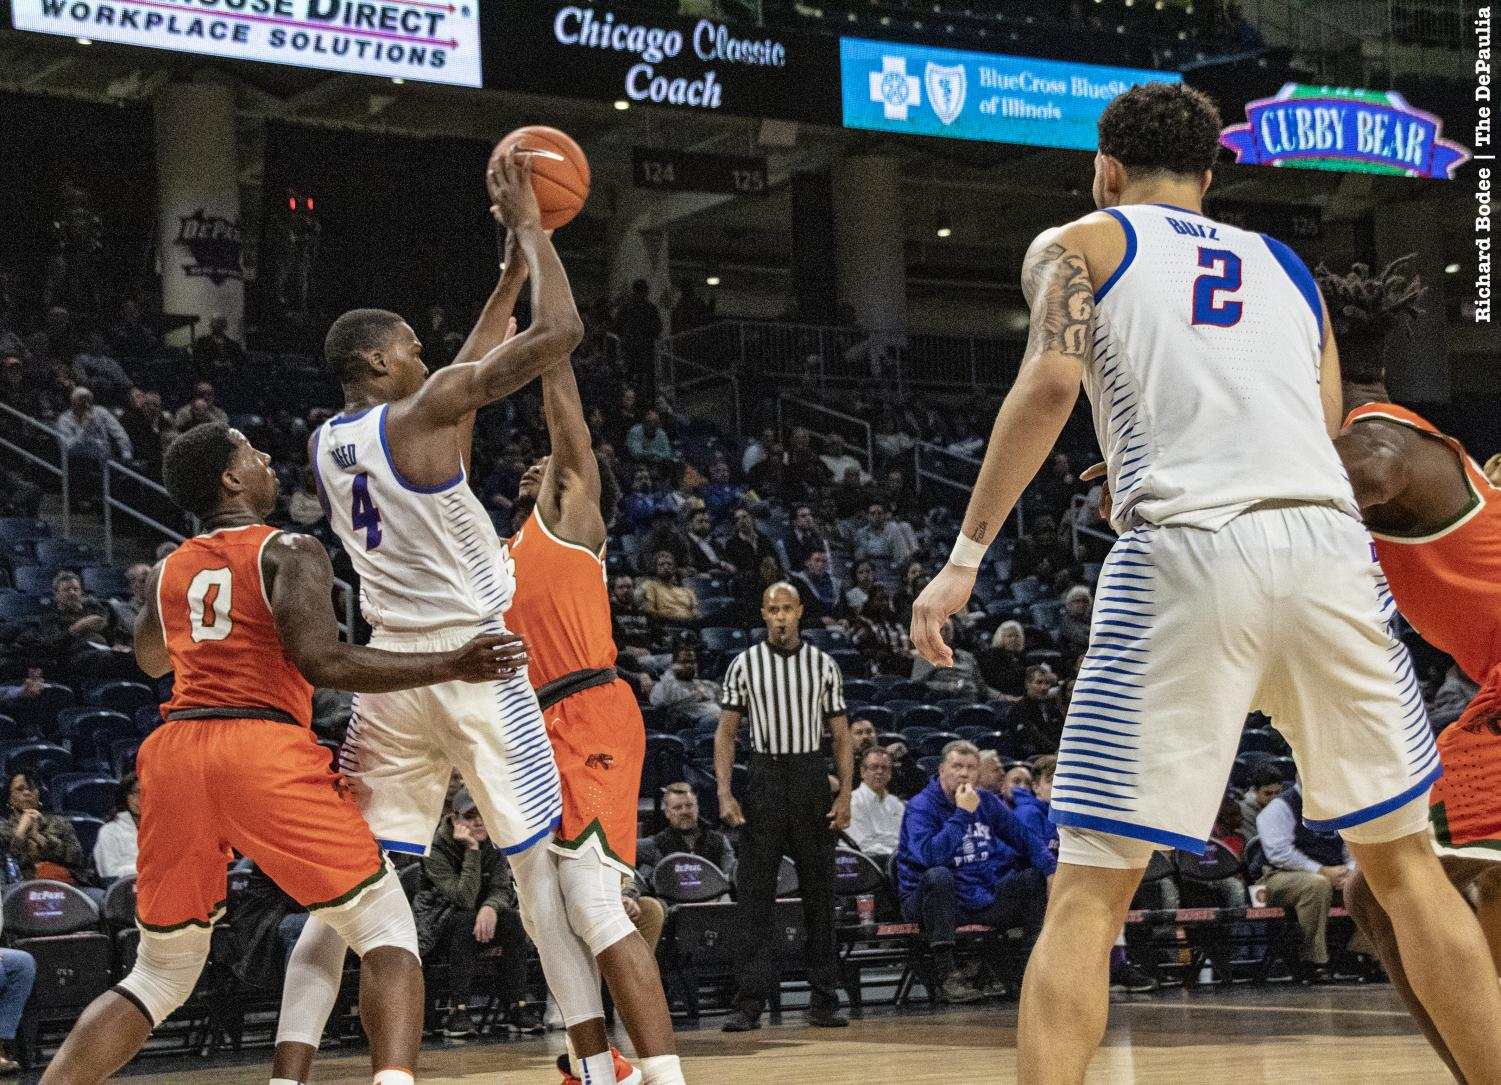 The concurrent emergence of Jaylen Butz and Paul Reed has been a major development for the DePaul Blue Demons this season. Richard Bodee I The DePaulia